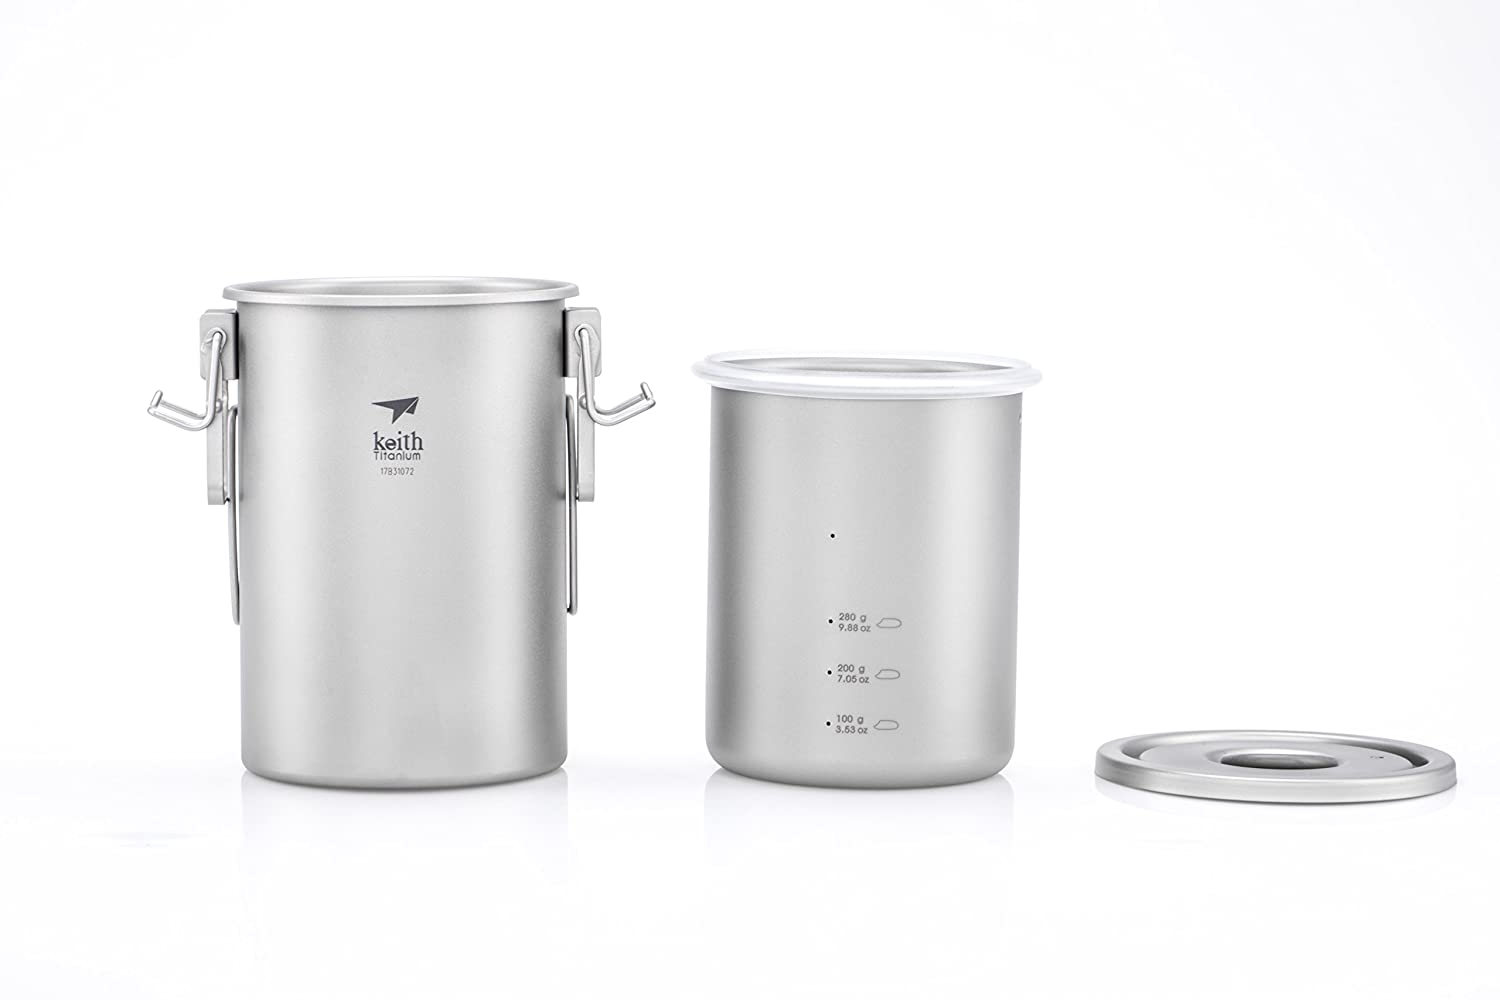 Amazon.com: Keith Titanium multifuncional cocina: Sports ...